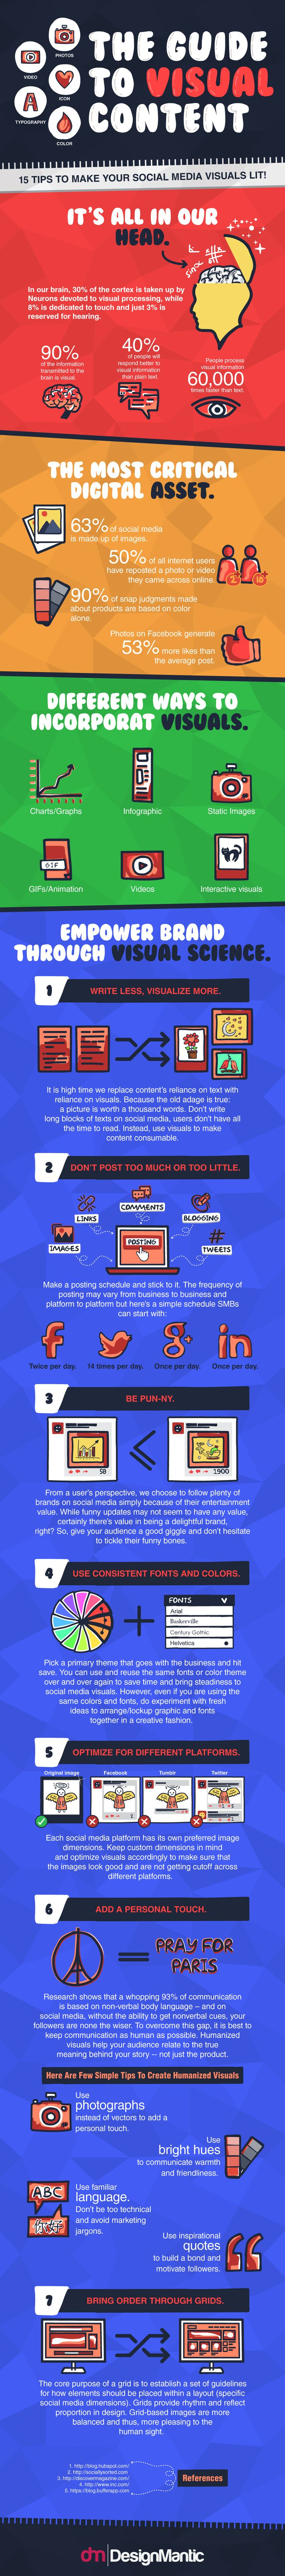 15 Tips to Improve Your Visual #SocialMedia Strategy #Infographic #Marketing